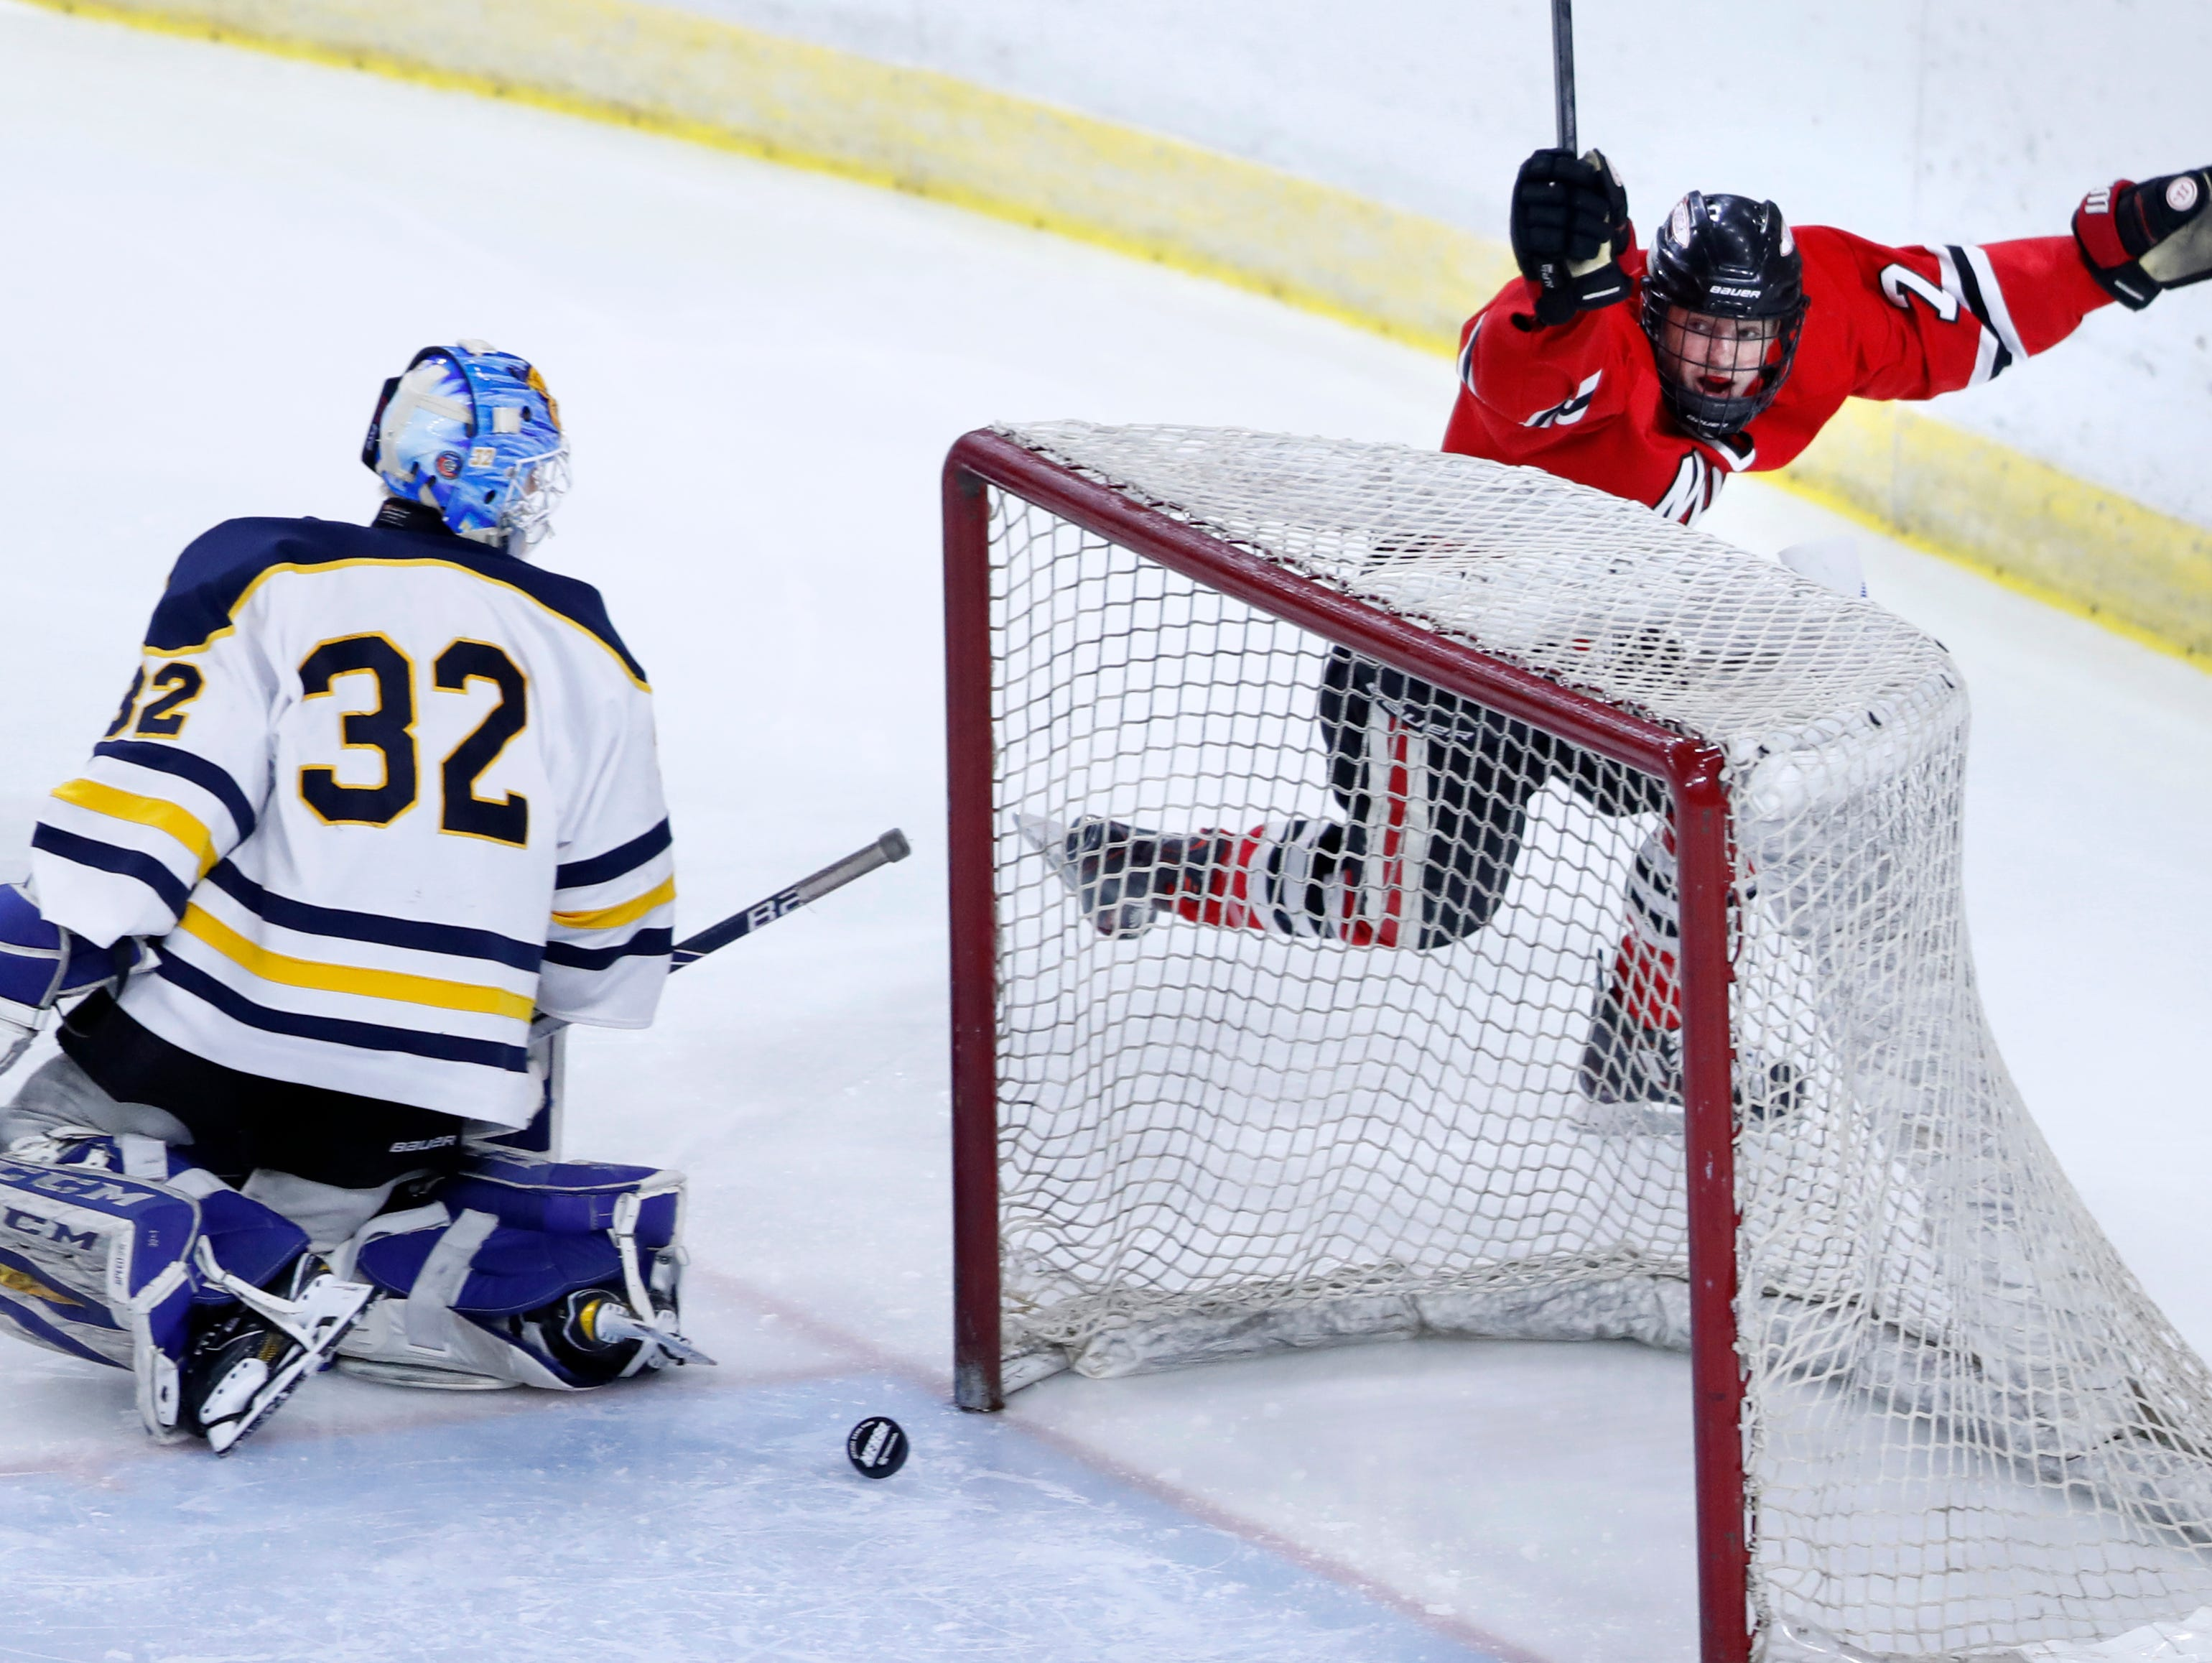 Neenah/Hortonville/MenashaÕs Ethan Long scores on University School of MilwaukeeÕs Patrick Kelly during the WIAA State Hockey Tournament championship match Saturday, March 2, 2019, at Veterans Memorial Coliseum in Madison, Wis.